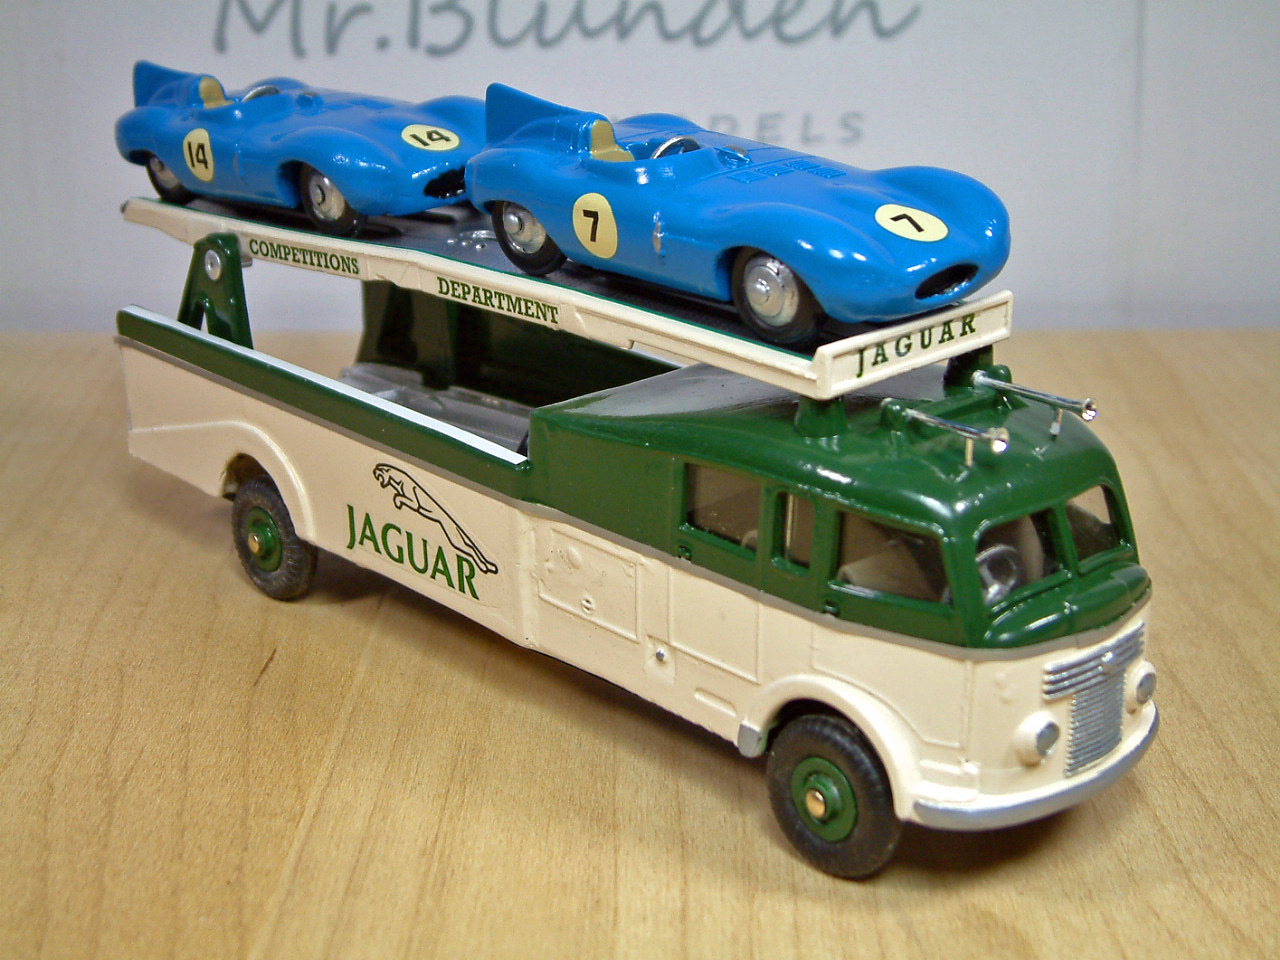 Toy Race Trucks : Dinky commer race car transporter roland ward